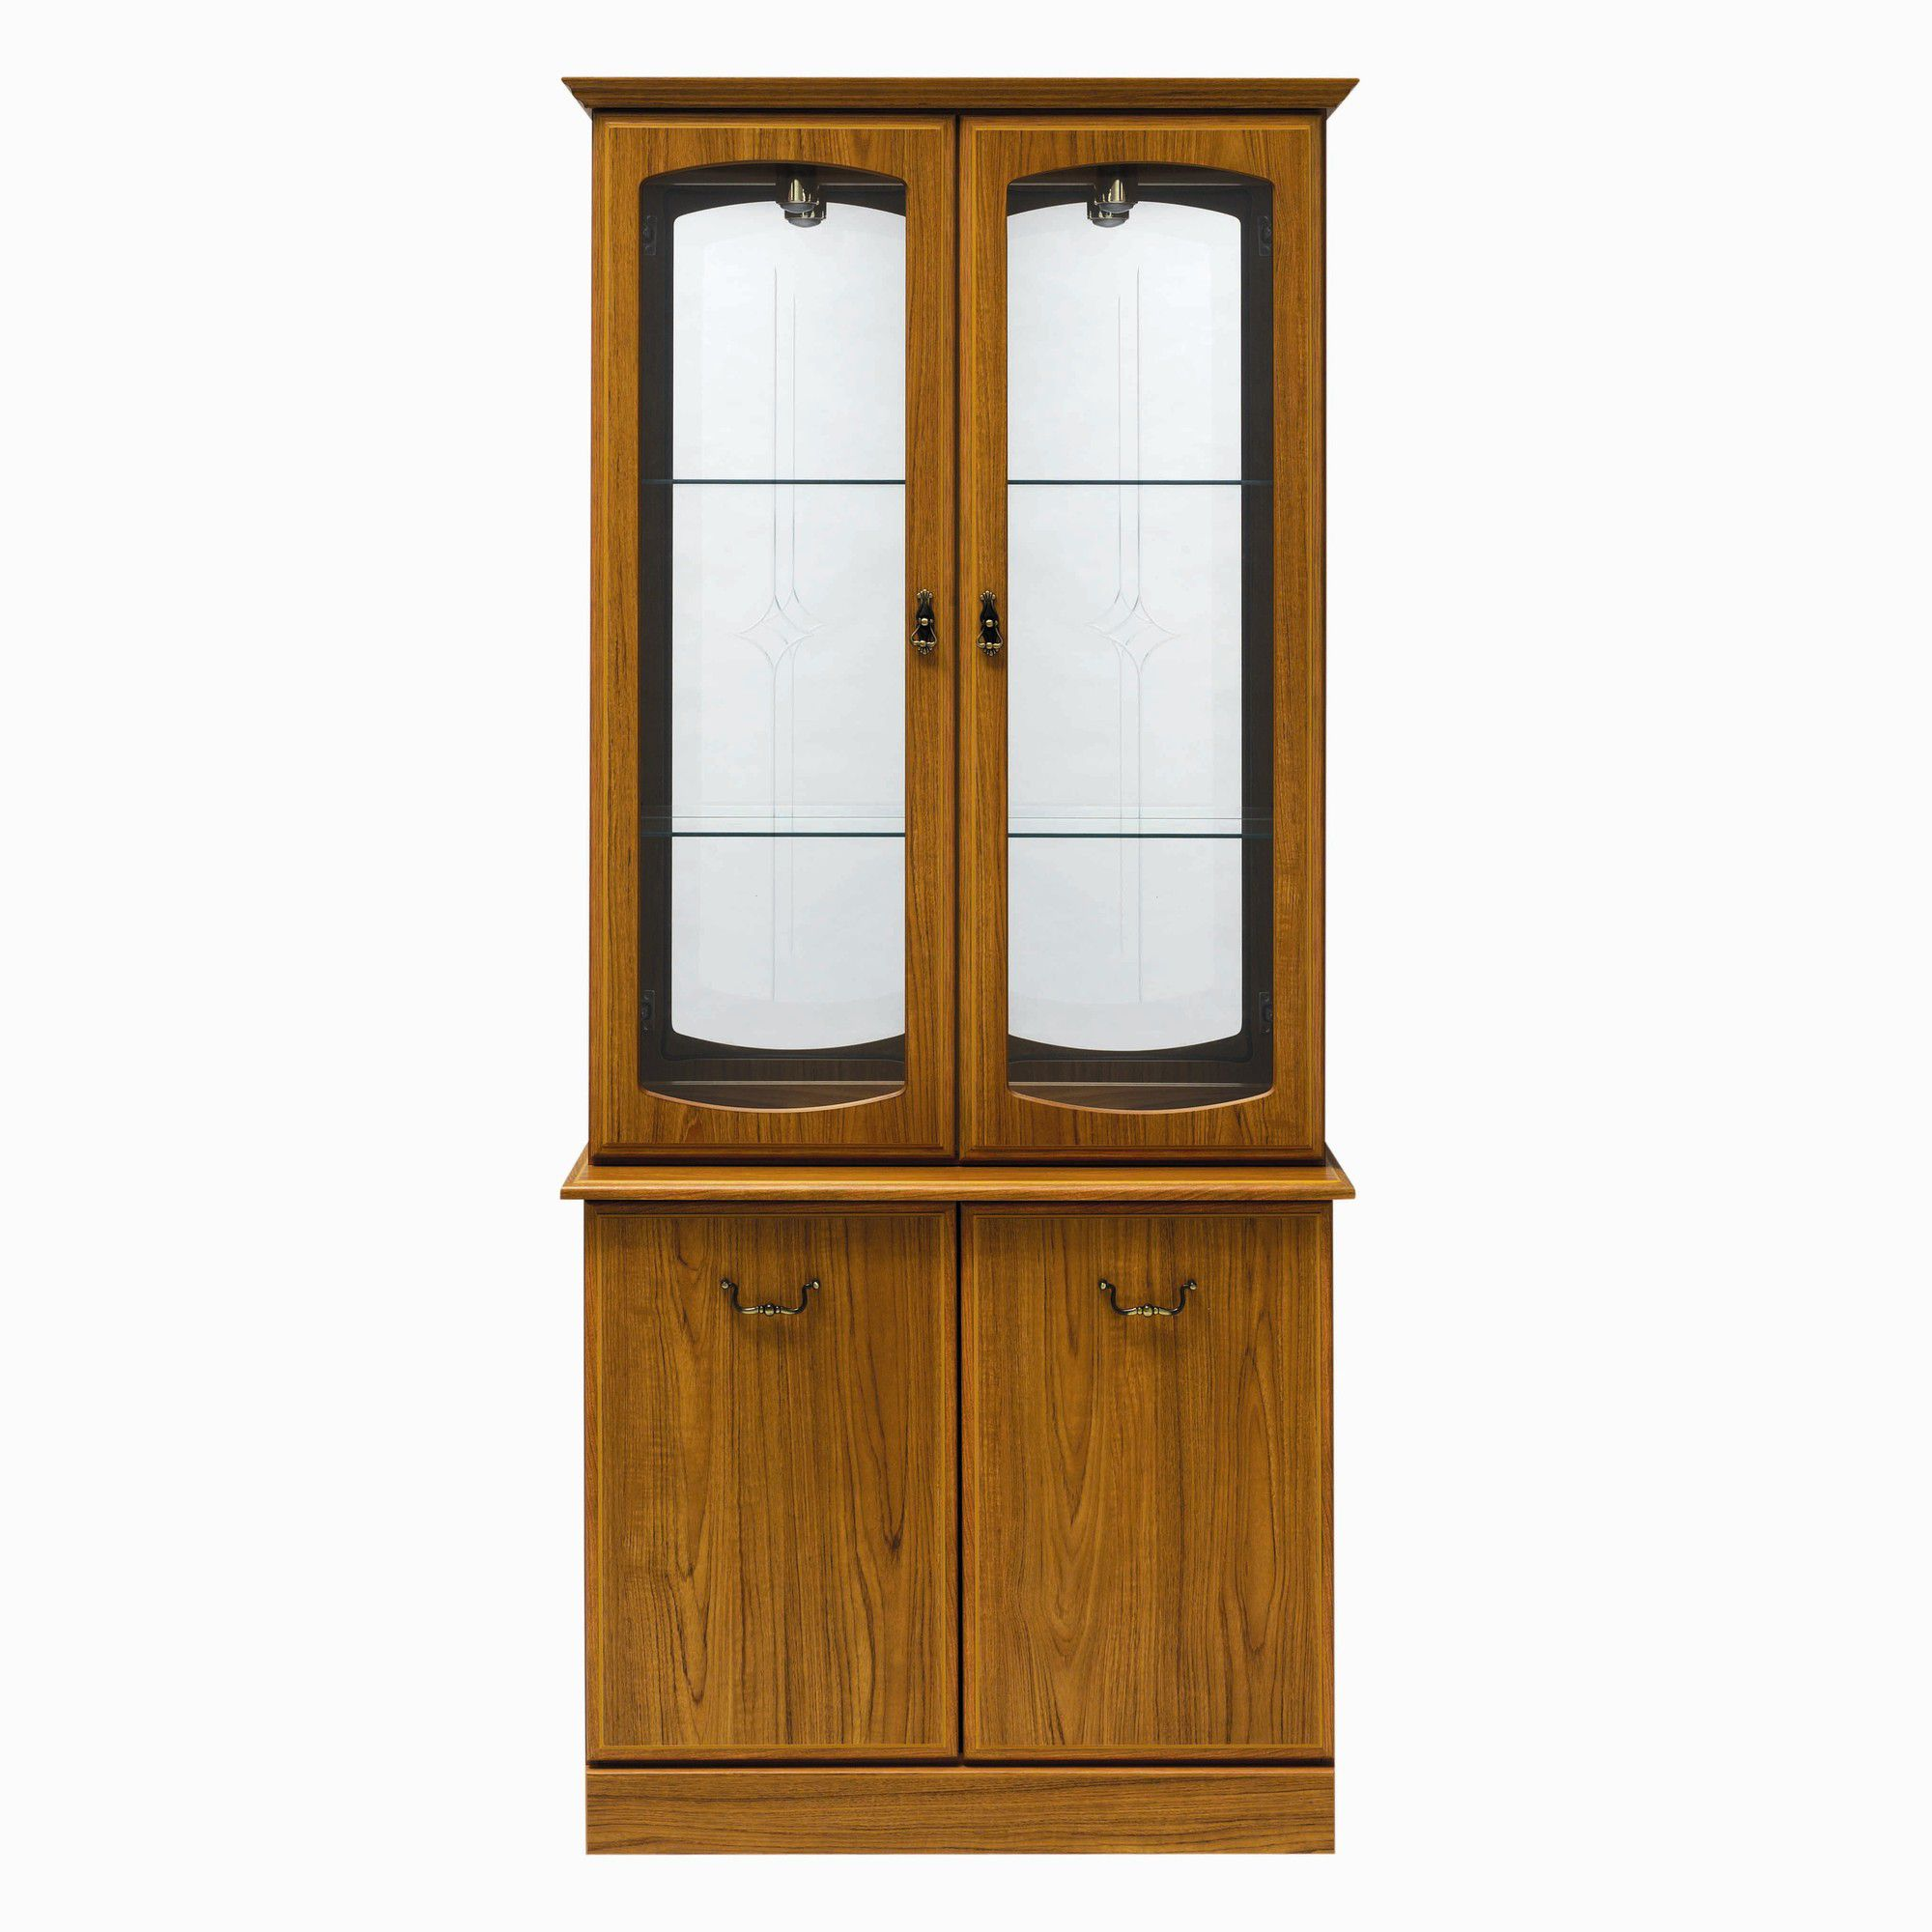 Caxton Tennyson 91 cm Display Cabinet in Teak at Tescos Direct